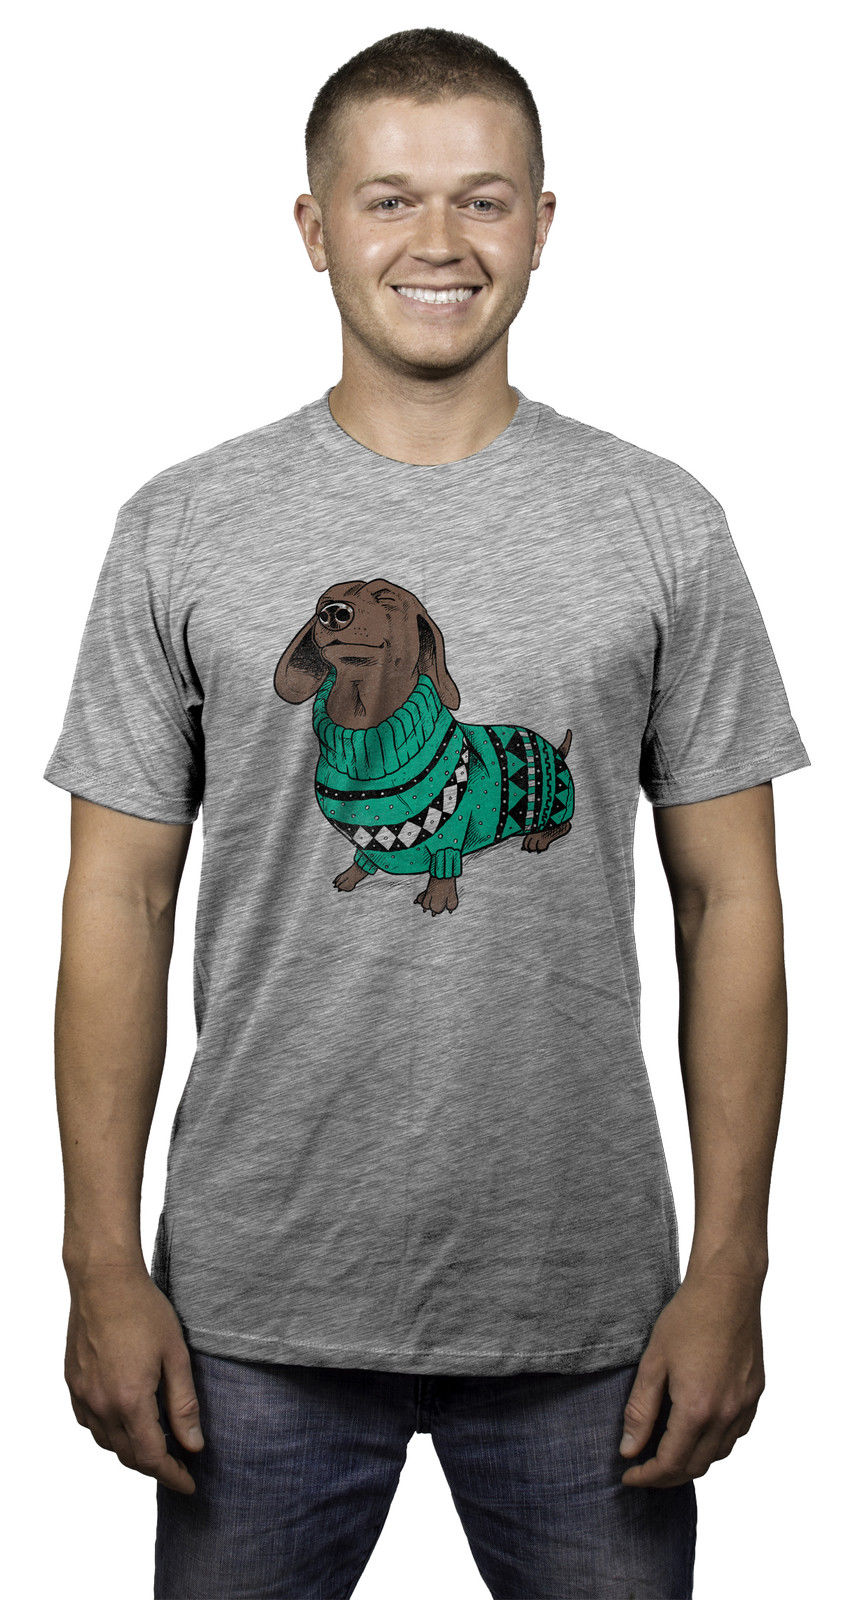 Mens Wiener Dog In Christmas Sweater Dachshund T Shirt 100% Cotton T-Shirts Brand Clothing Tops Tees Hot Selling 100 % Cotton